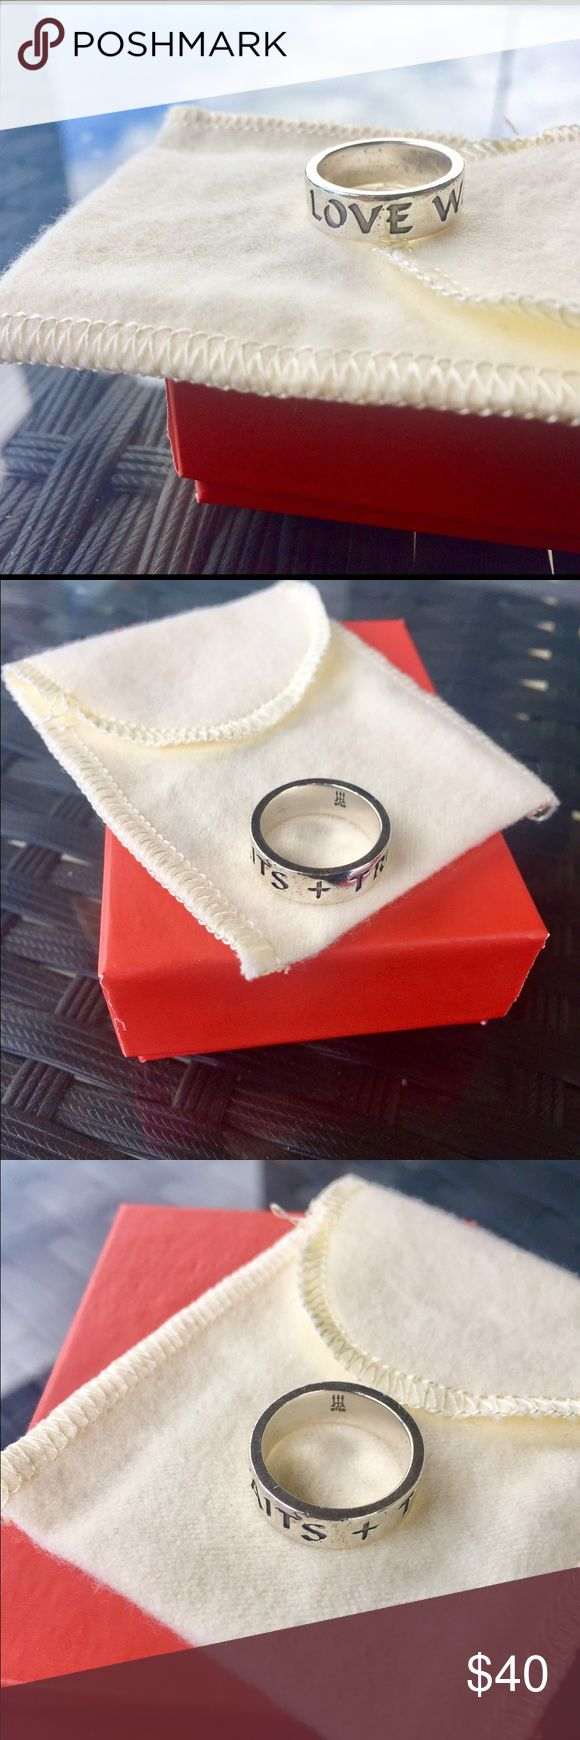 James Avery True Love Waits Ring James Avery True Love Waits Ring   Size 5  No flaws at all. Ring is in excellent condition.   Ships same or next day :) James Avery Jewelry Rings